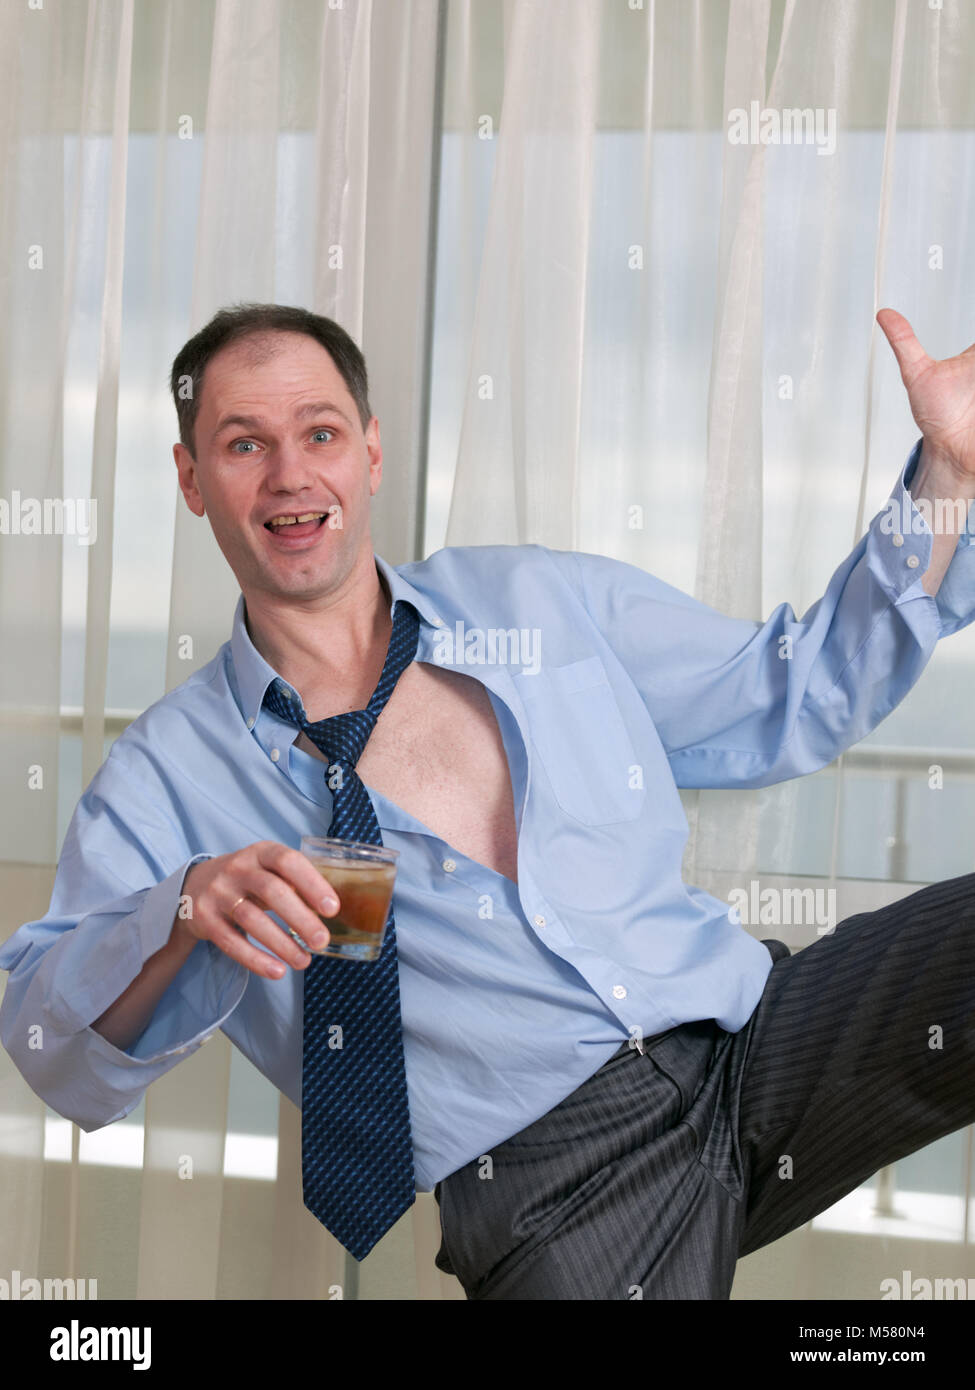 Drunk businessman holding a glass - Stock Image